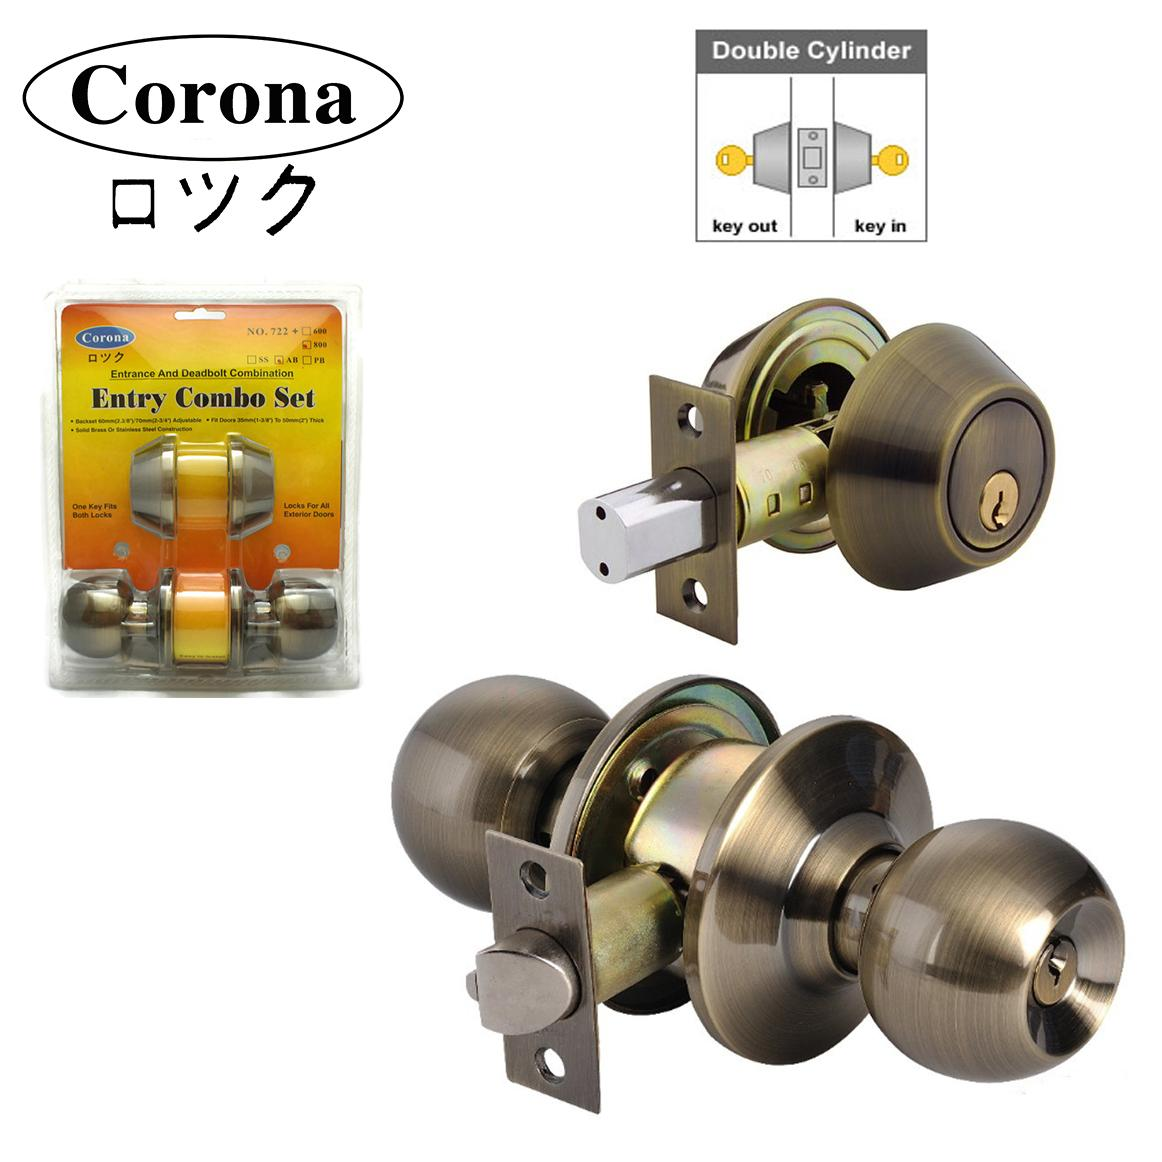 Corona Philippines Price List Door Knob Deadbolt Lock Parts Home Diagram 722 800 Entrance Keyed And Double Cylinder Combination